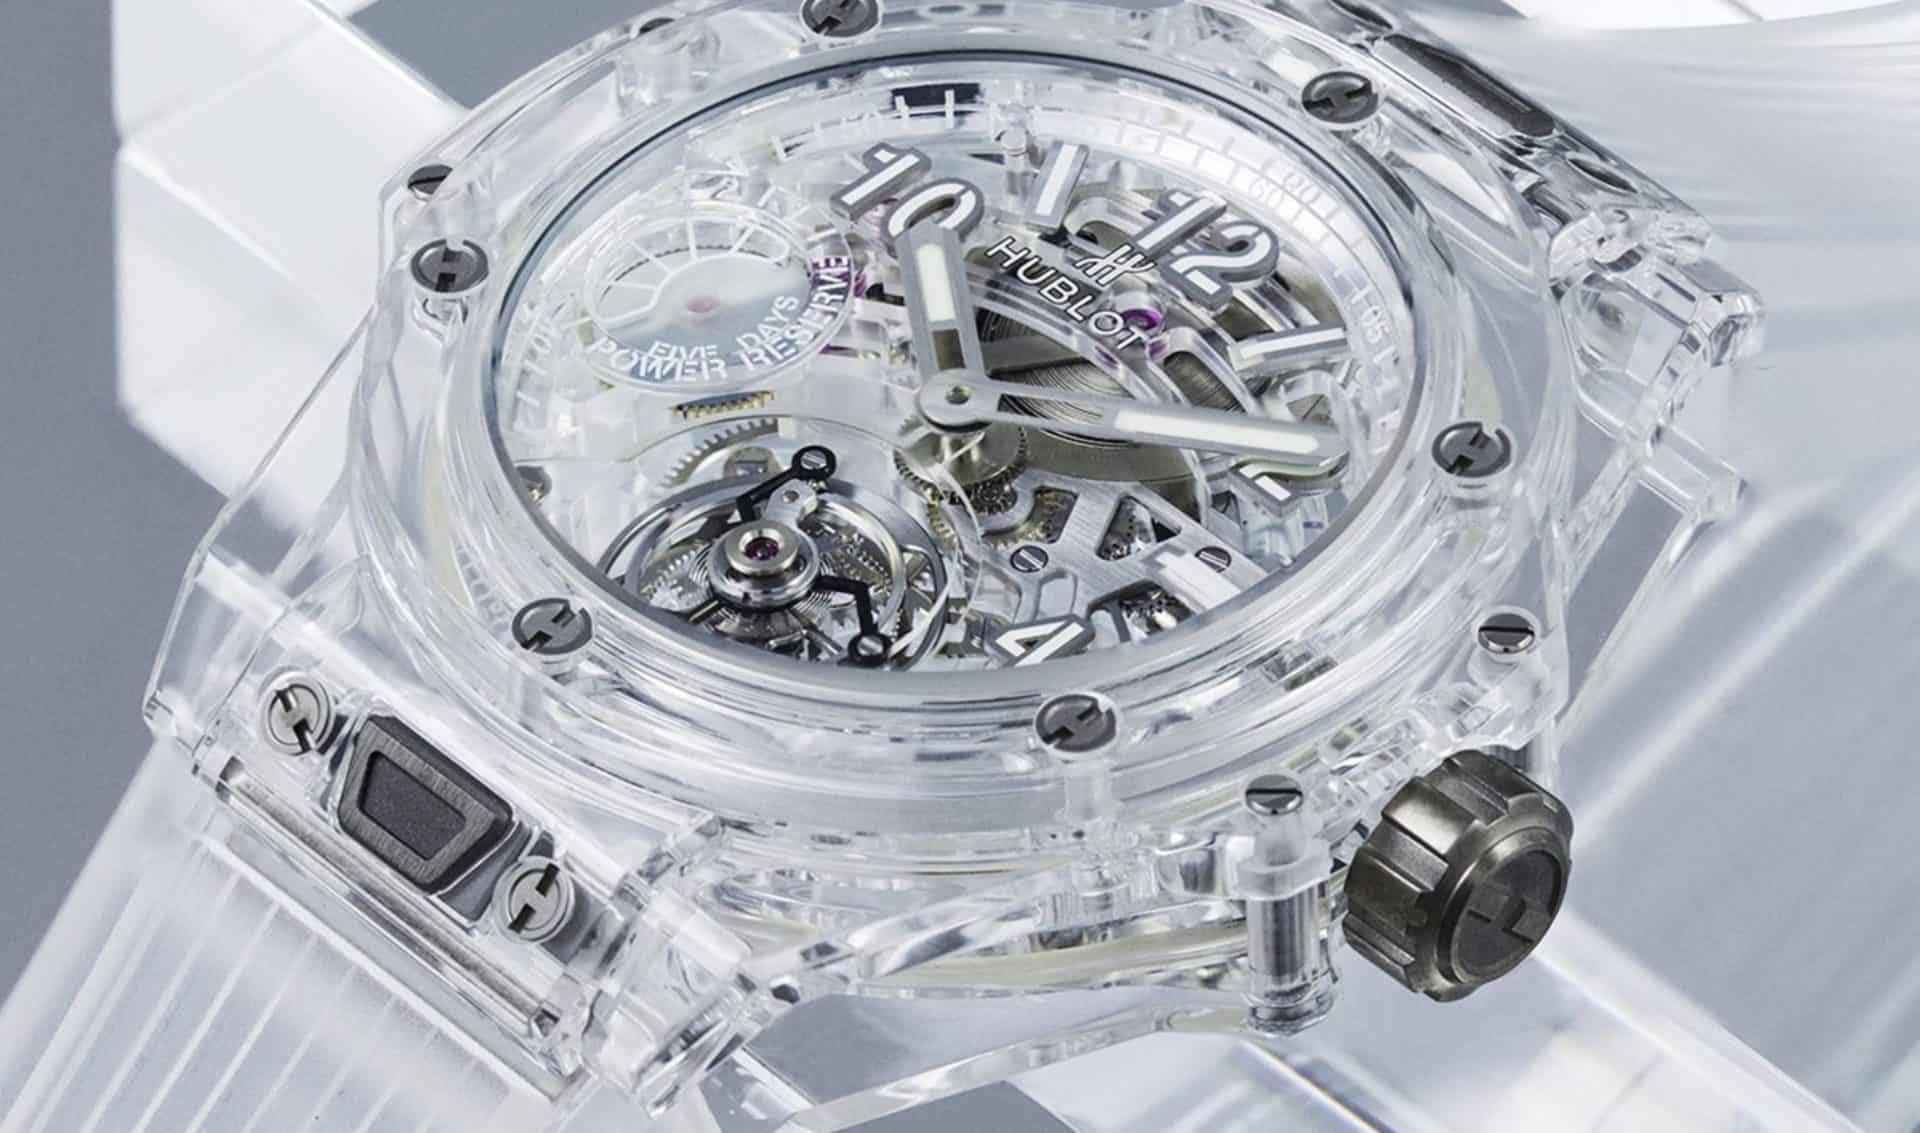 Hublot Big Bang Sapphire Tourbillon Skeleton